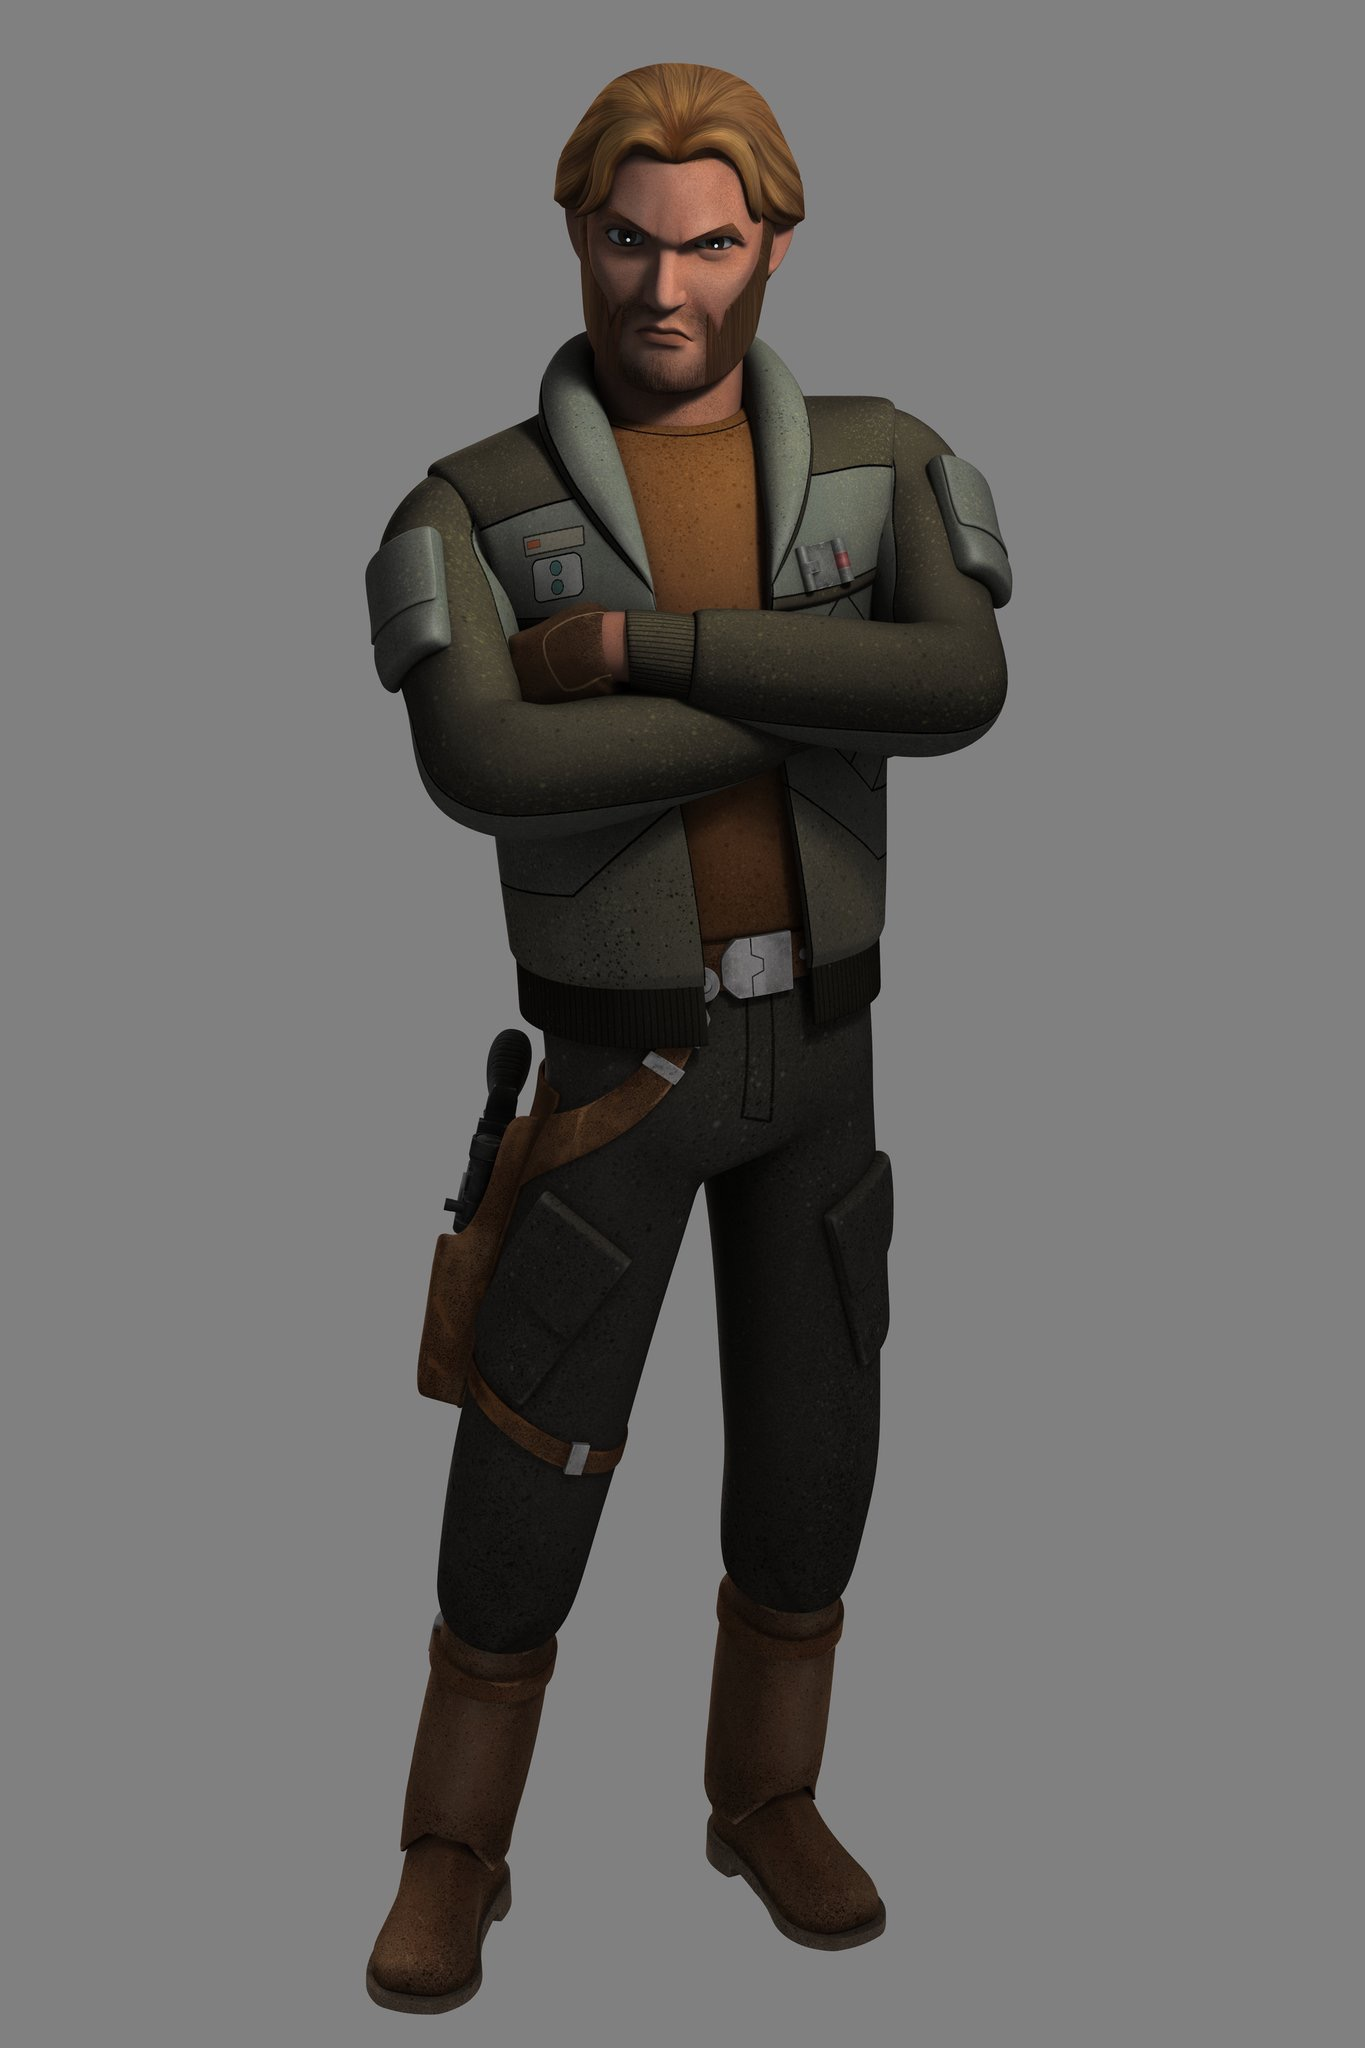 Alexsandr Kallus Star Wars Rebels Wiki Fandom One of the most fun projects i had last year: alexsandr kallus star wars rebels